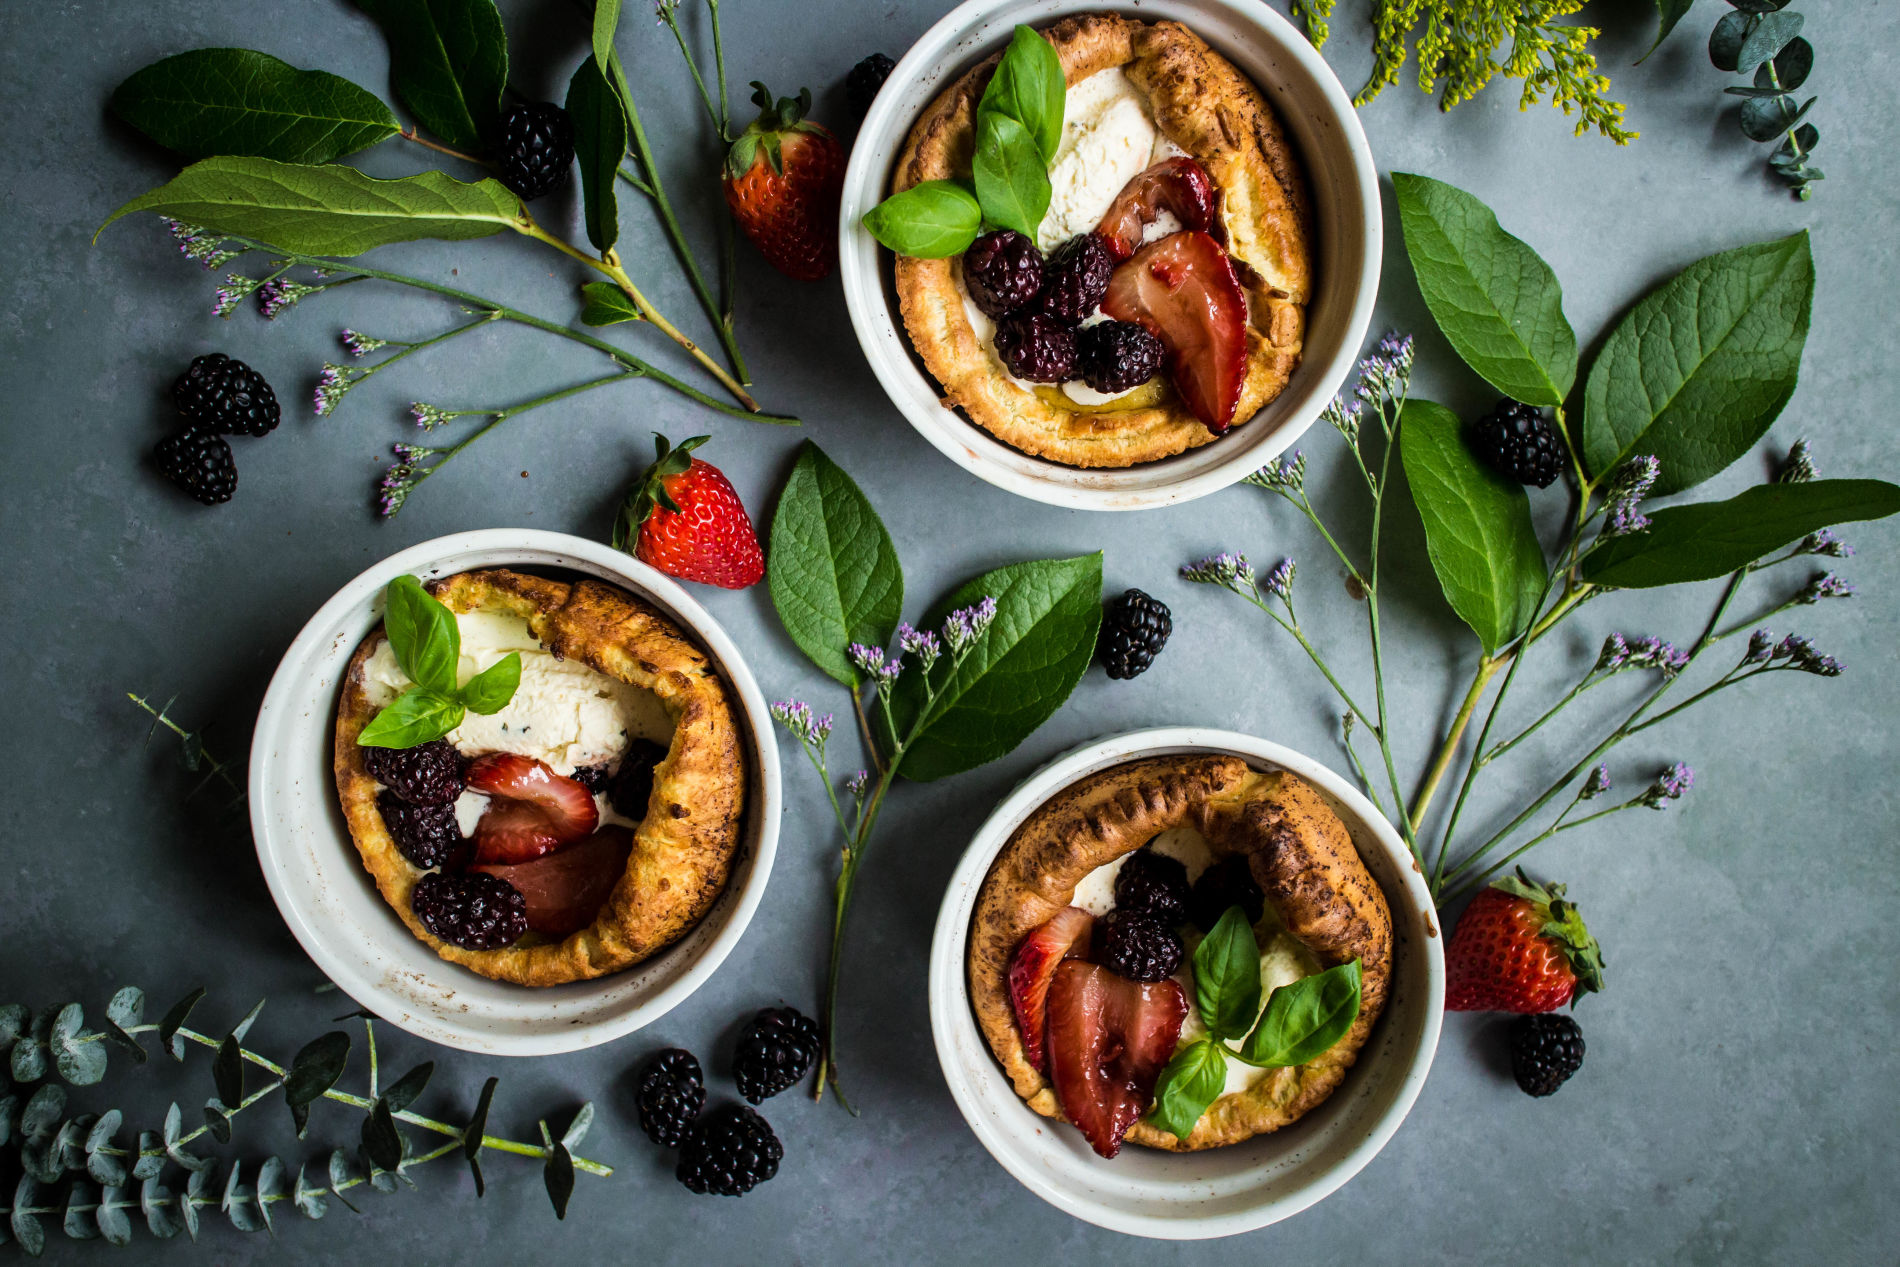 Mini Dutch Babies for Easter brunch from MakeItGrateful.com